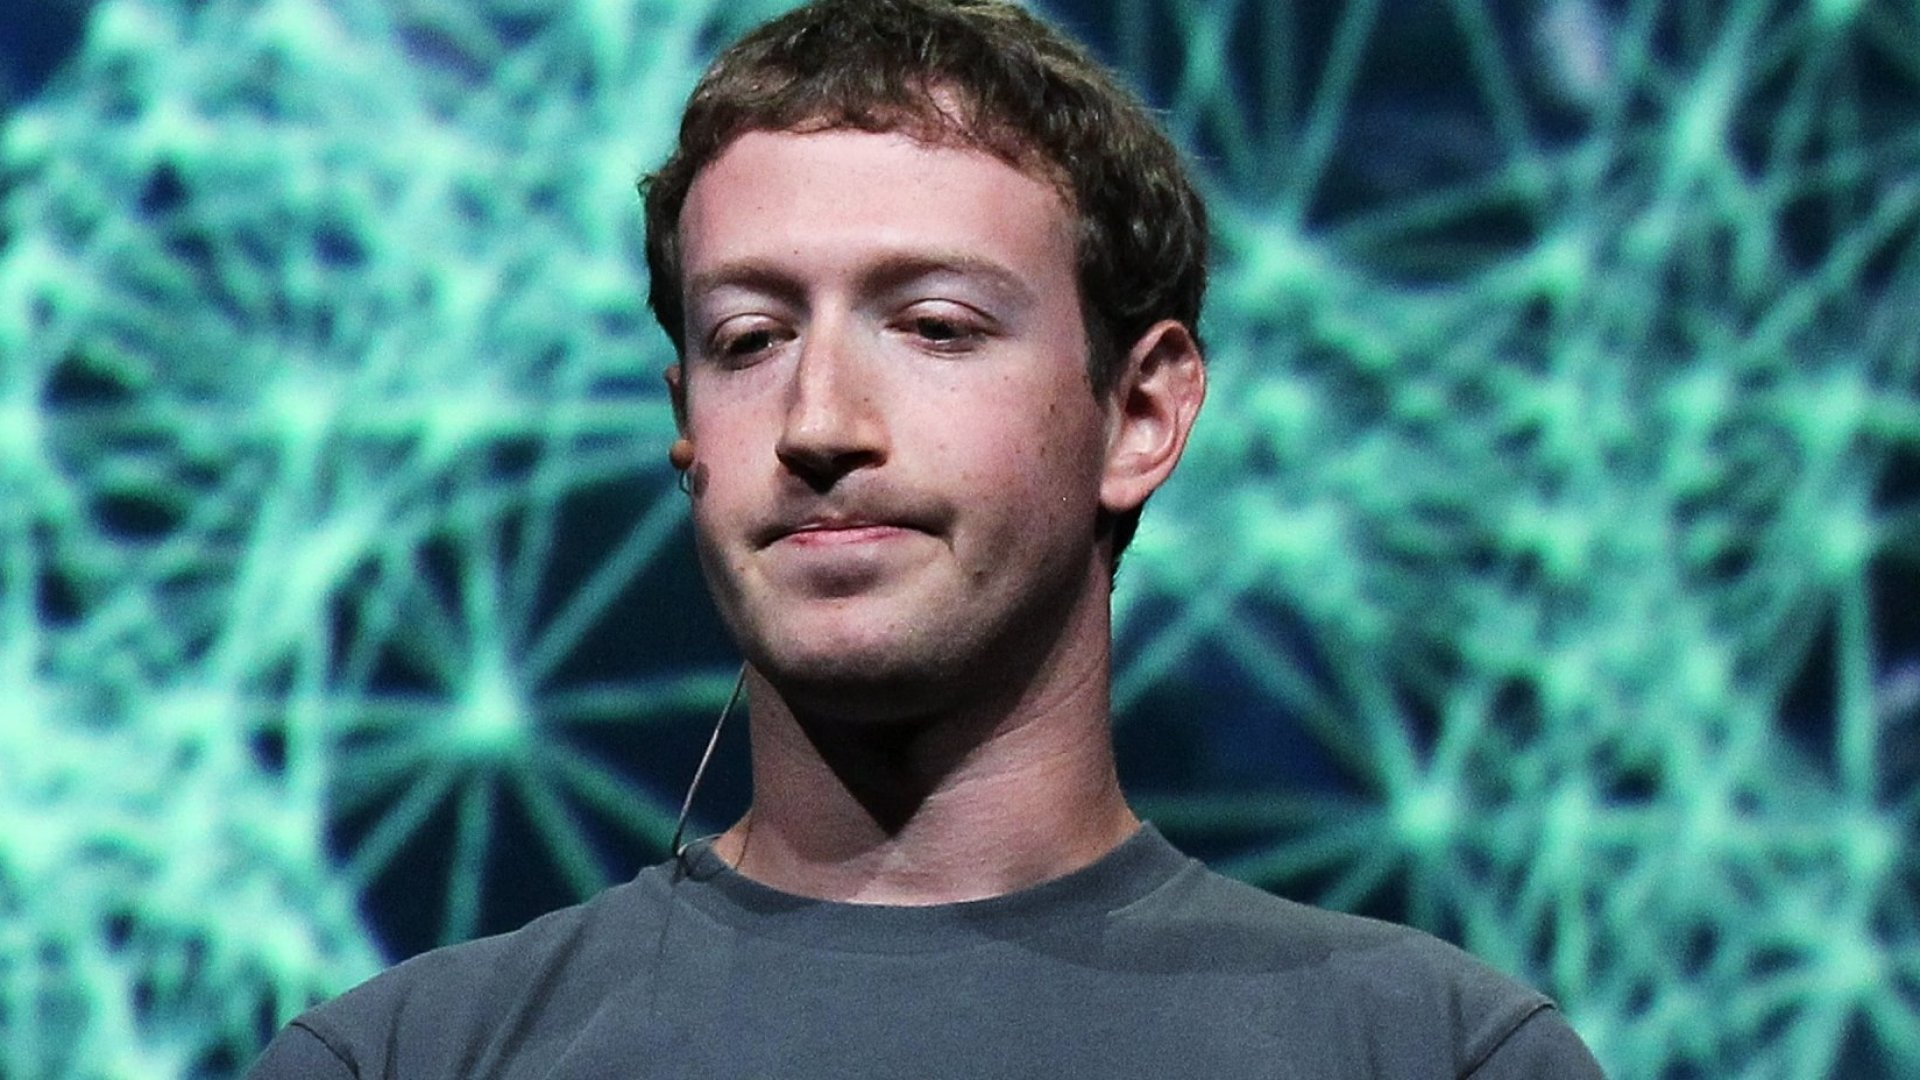 Mark Zuckerberg's Going to Testify Before Congress. Here Are the 5 Things He Should Say (but Probably Won't)